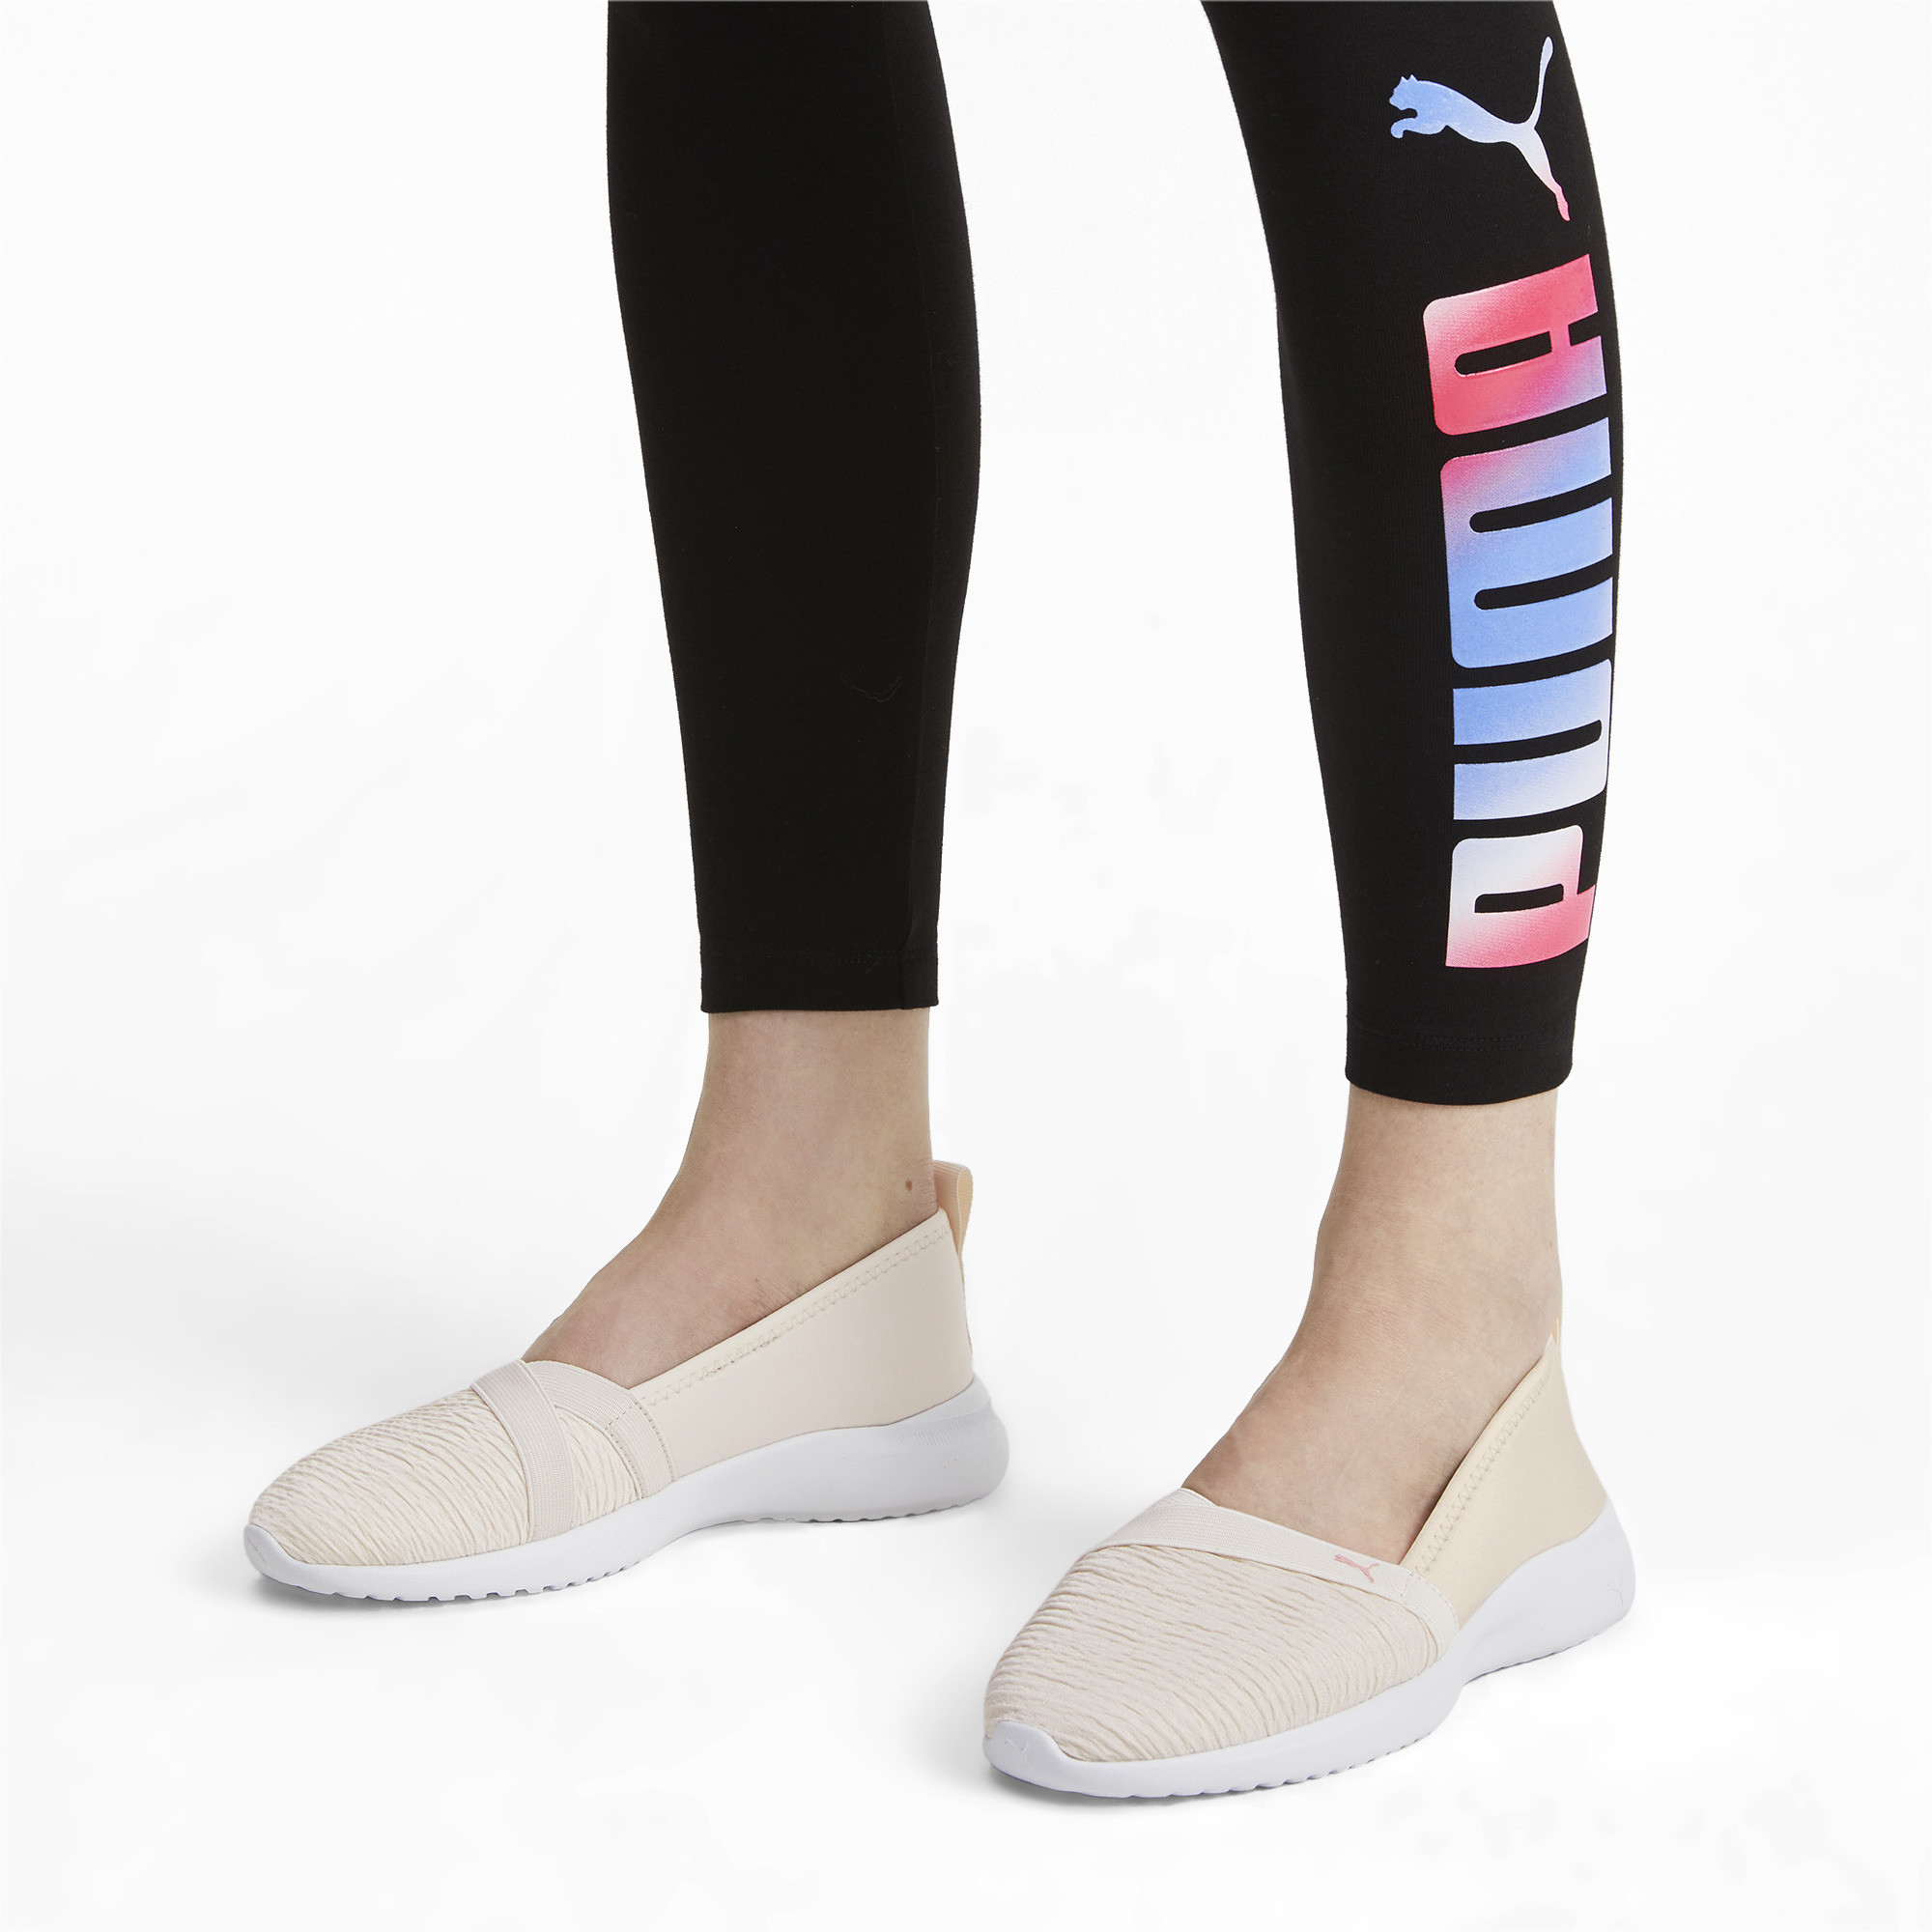 Details about PUMA Adelina Women's Ballet Shoes Women Shoe Basics